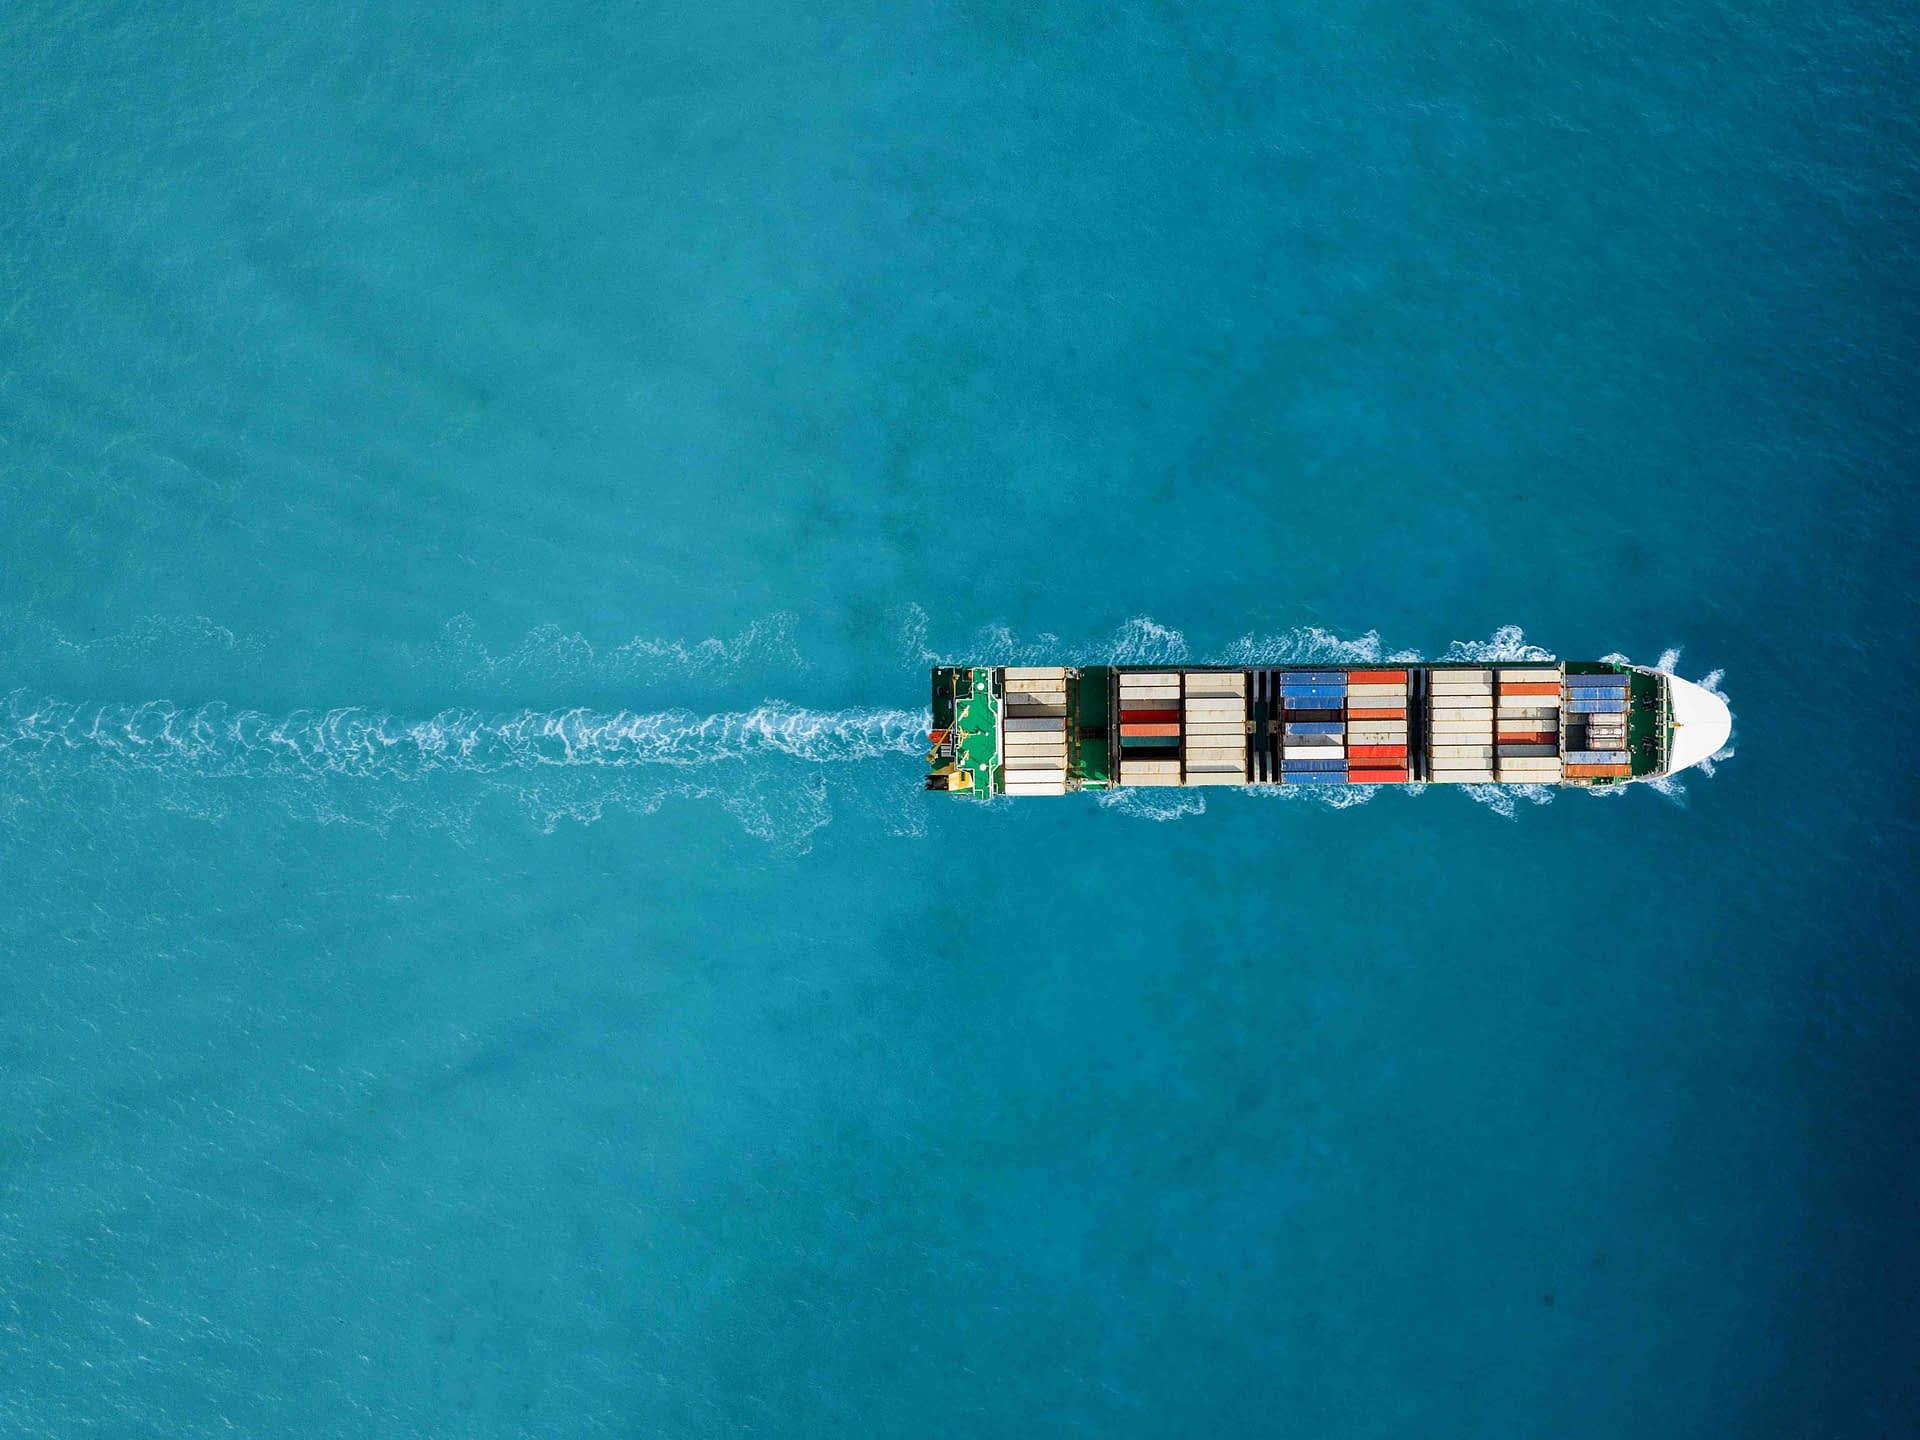 Container ship in export and import. International shipping cargo. Aerial view